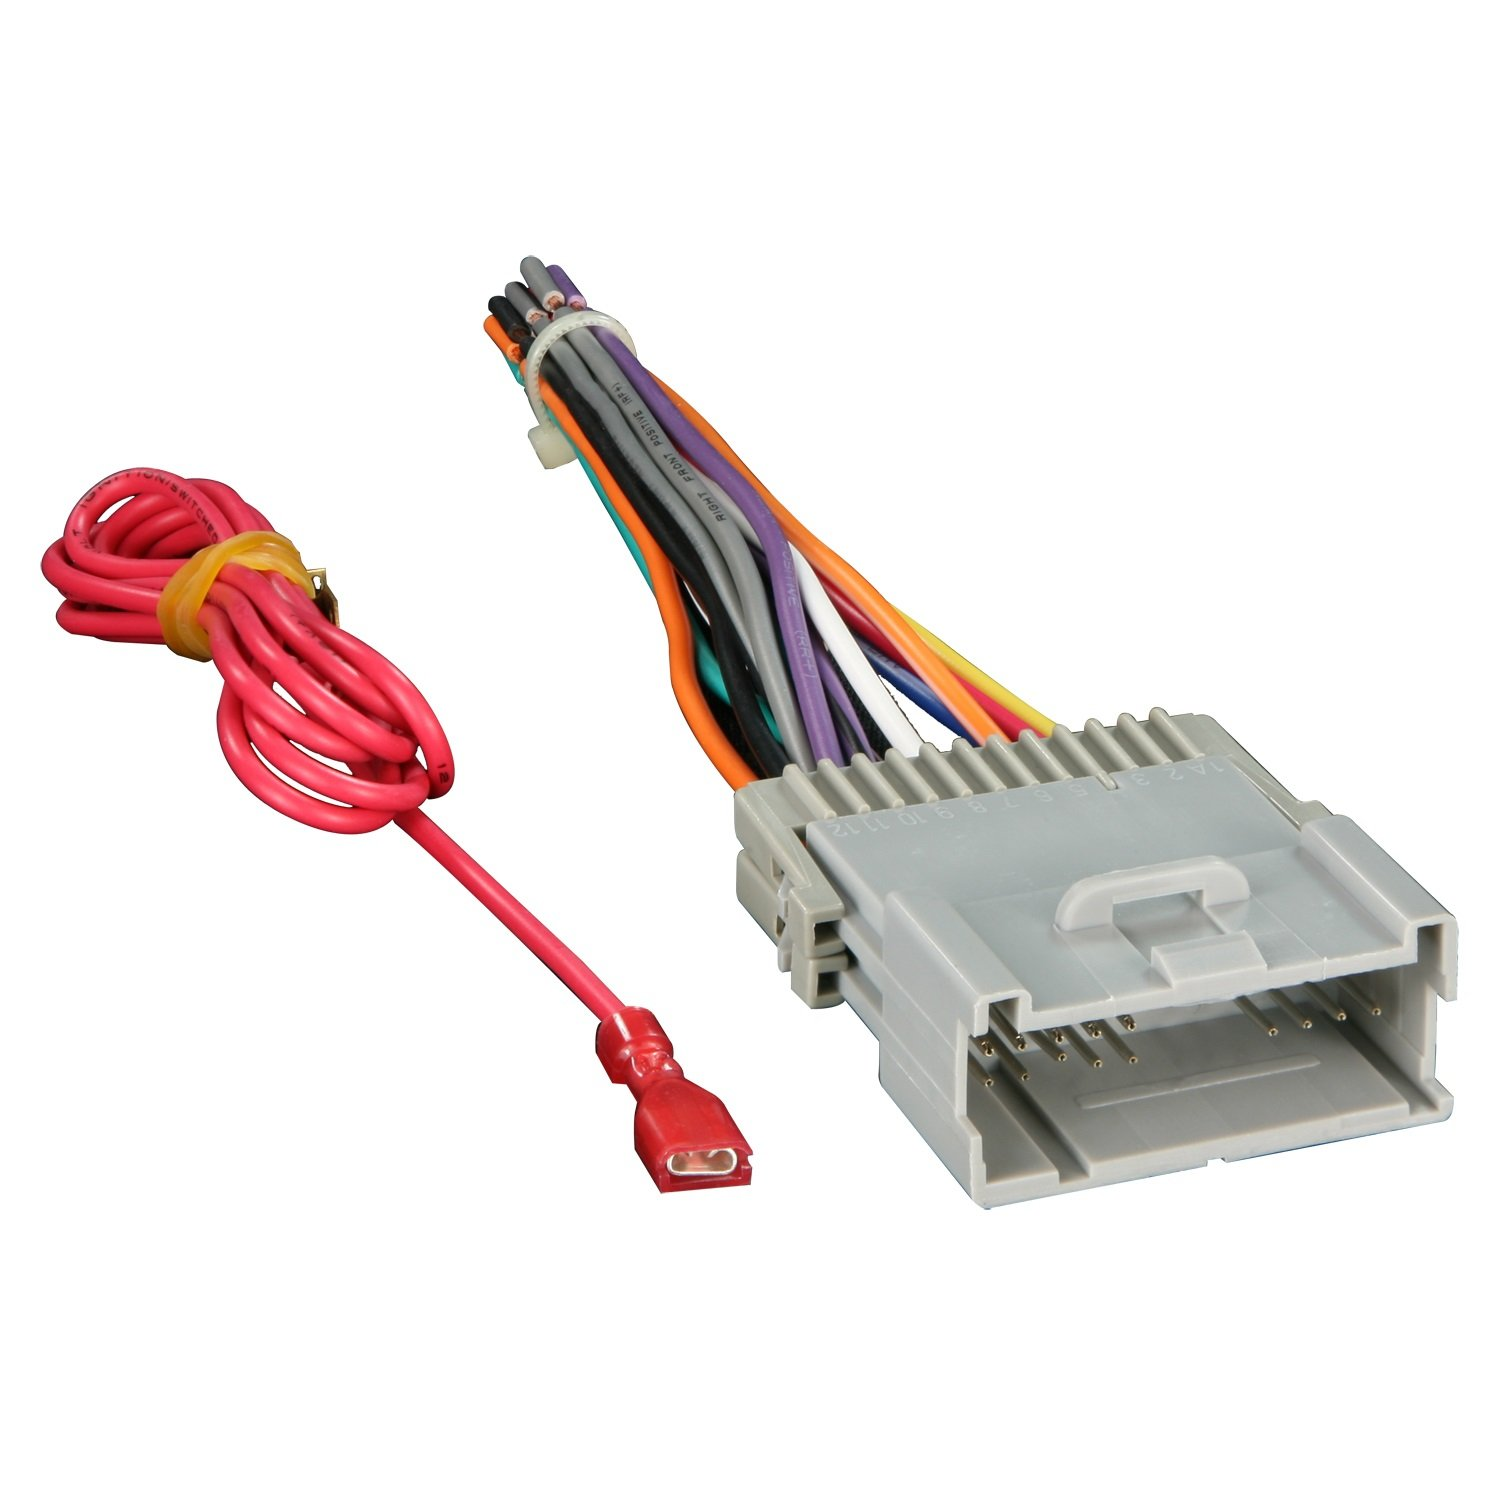 61eewxp9orL._SL1500_ amazon com metra 70 2003 radio wiring harness for gm 98 08 snap on wire harness adapter at bakdesigns.co